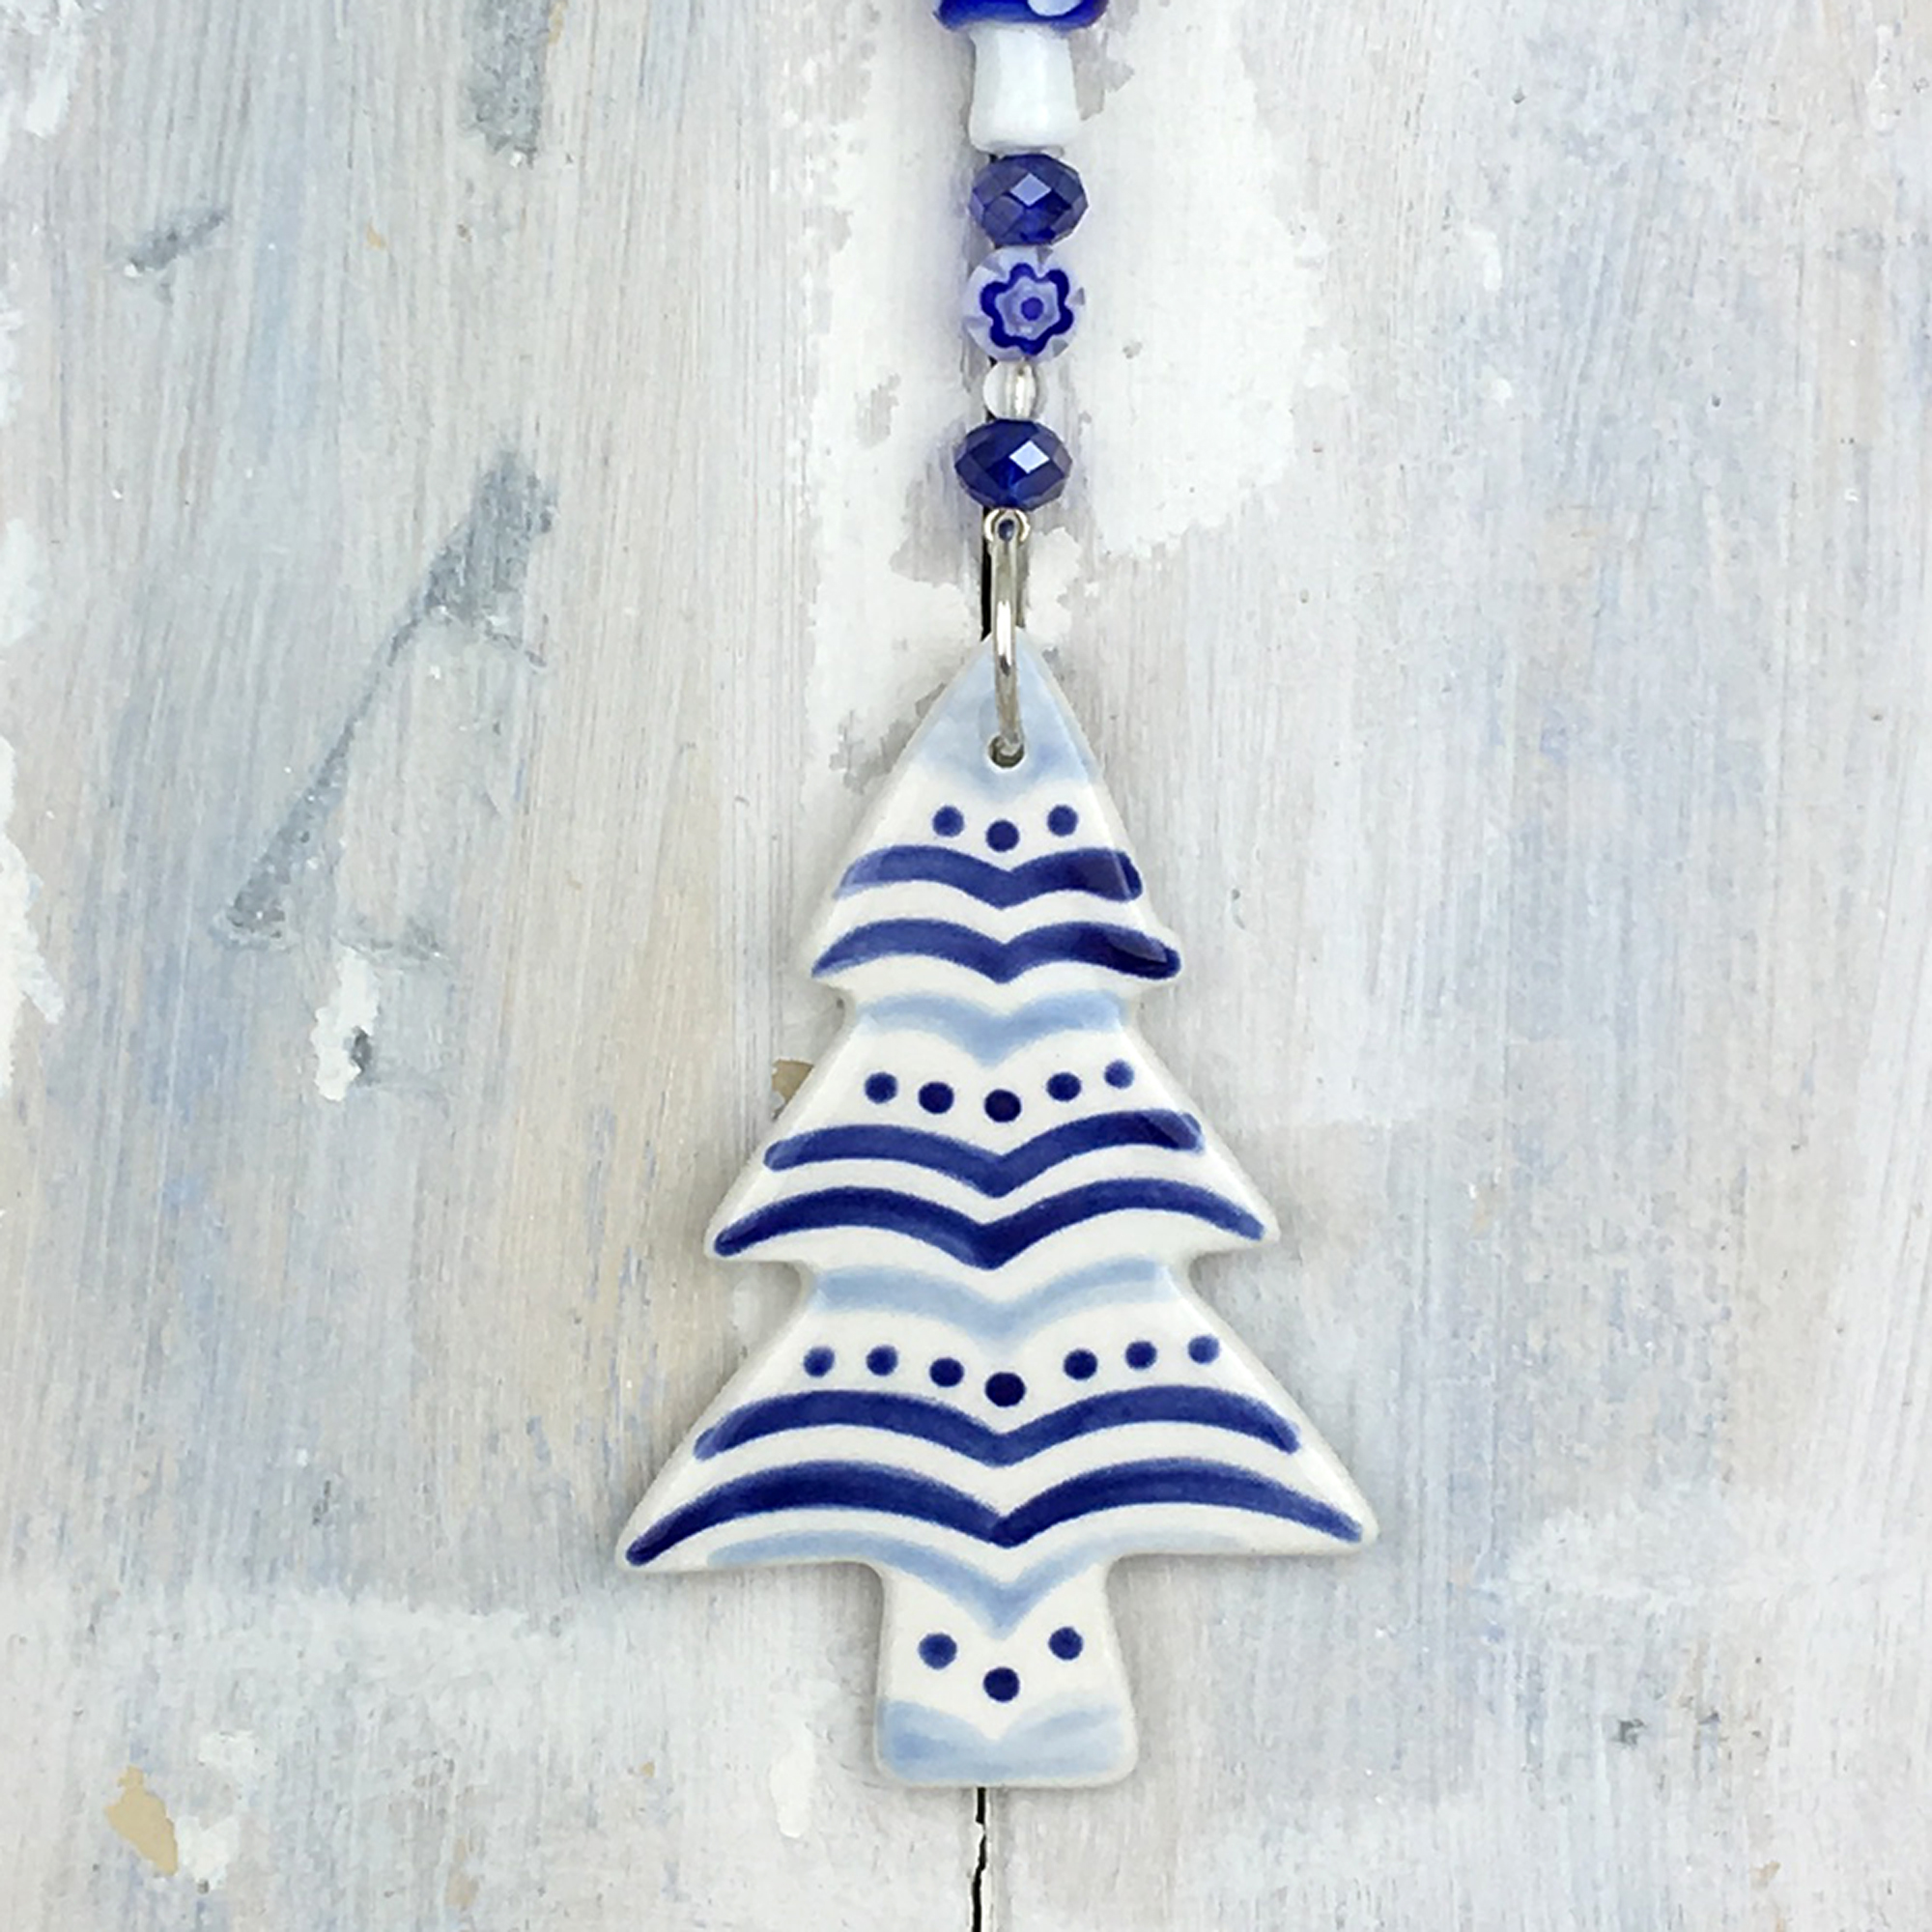 Blue Christmas Tree 2019 Decoration Handmade In The Uk